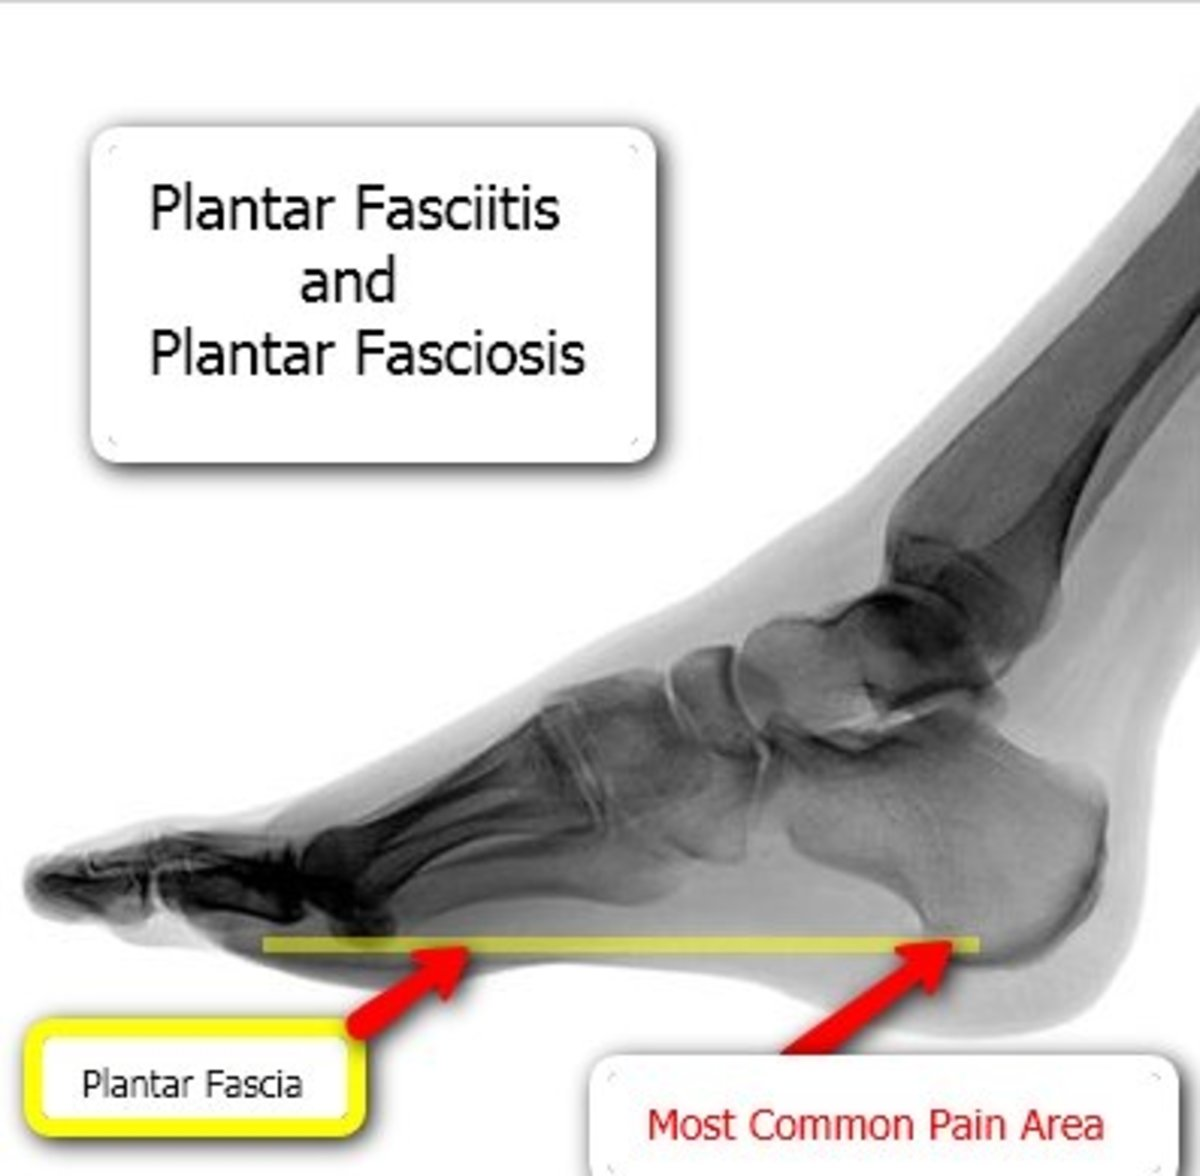 Plantar Fascia Heel Pain © Counterpoise (image used with permission)